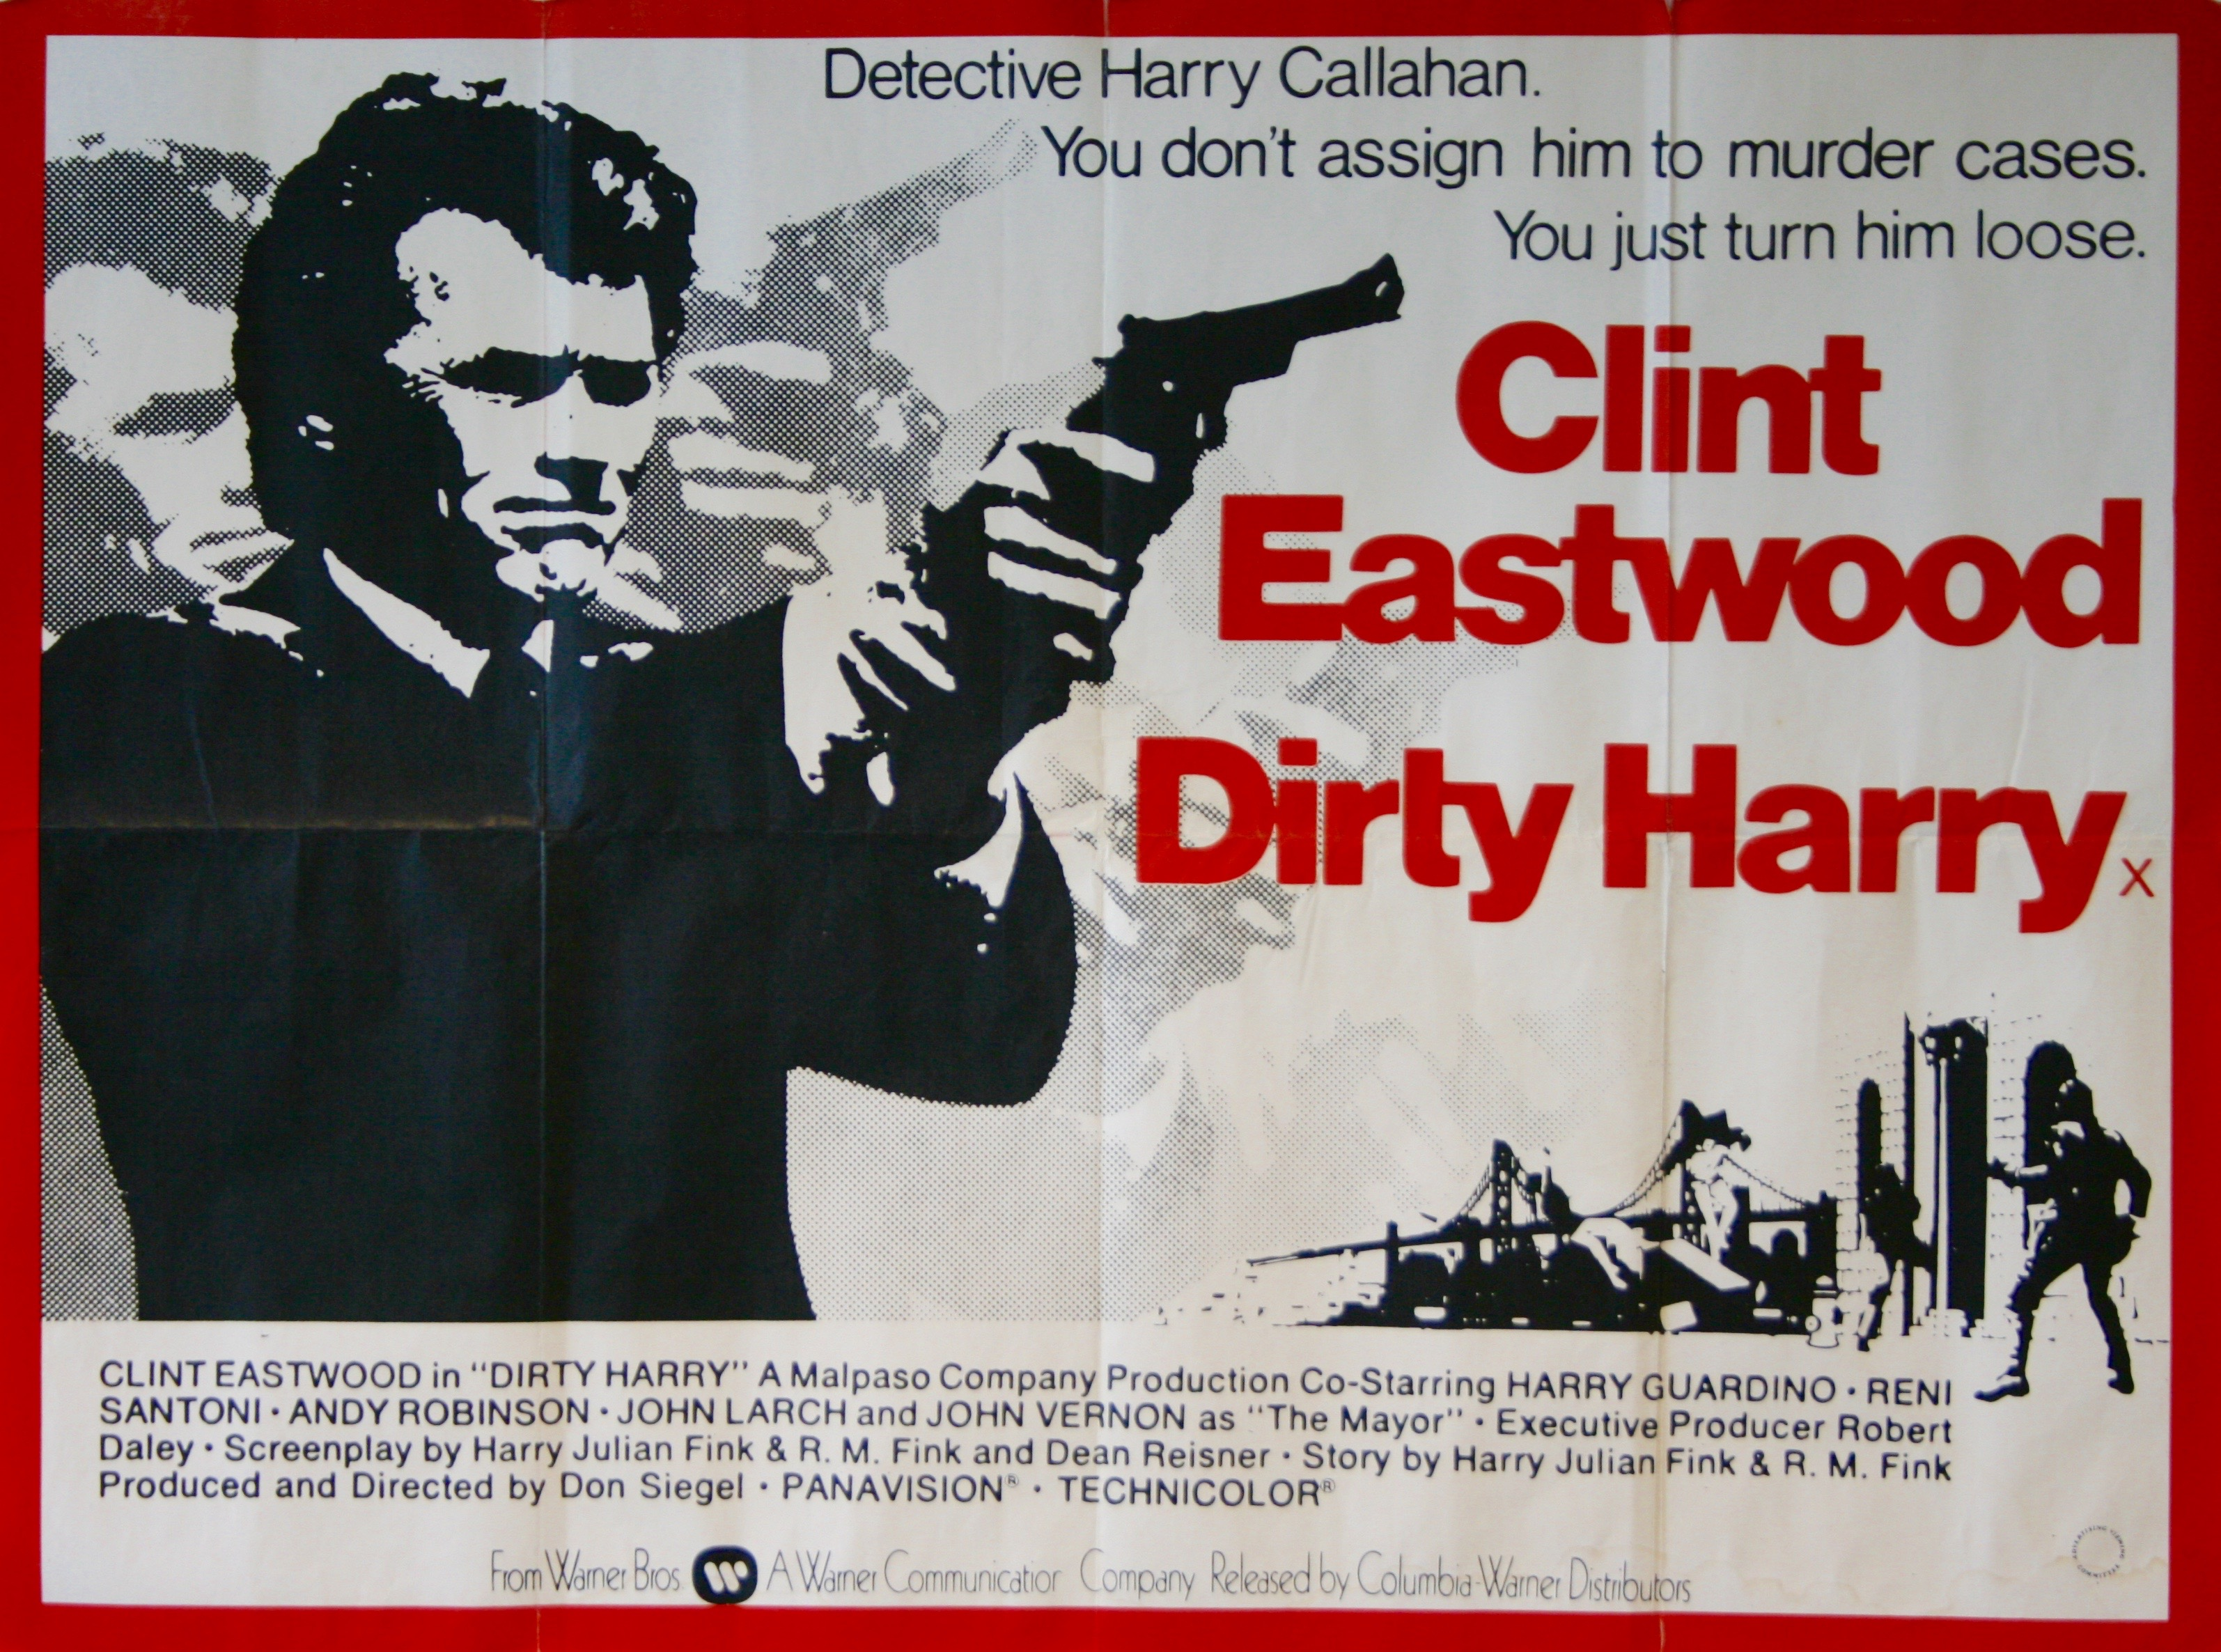 Dirty Harry - Vintage Movie Posters